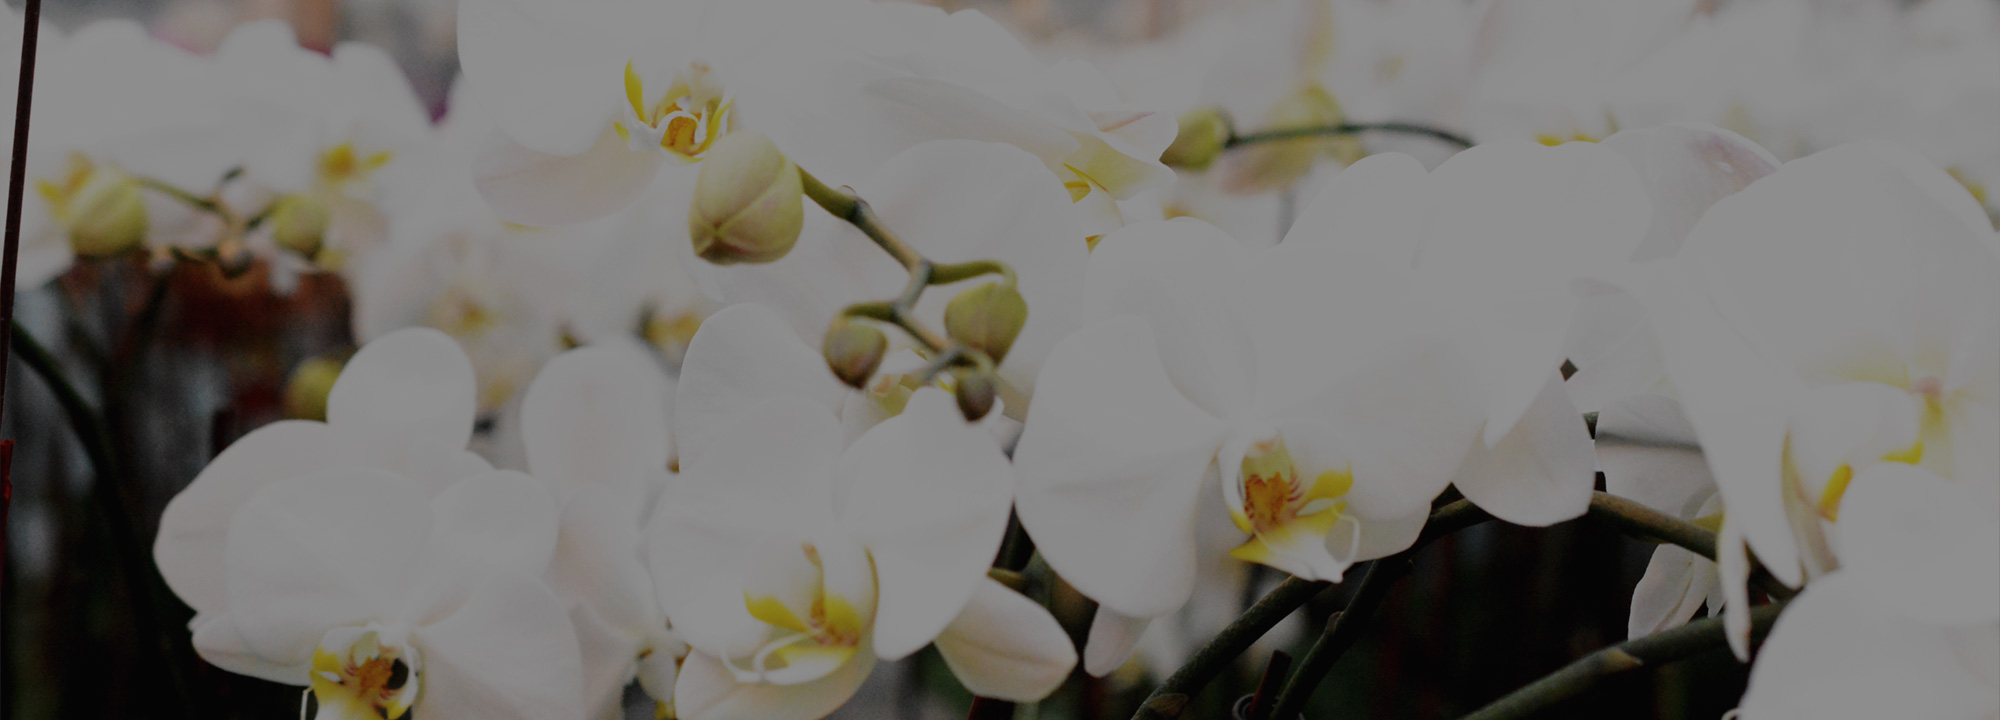 The Anatomy Of Your Orchids - Plainview Pure